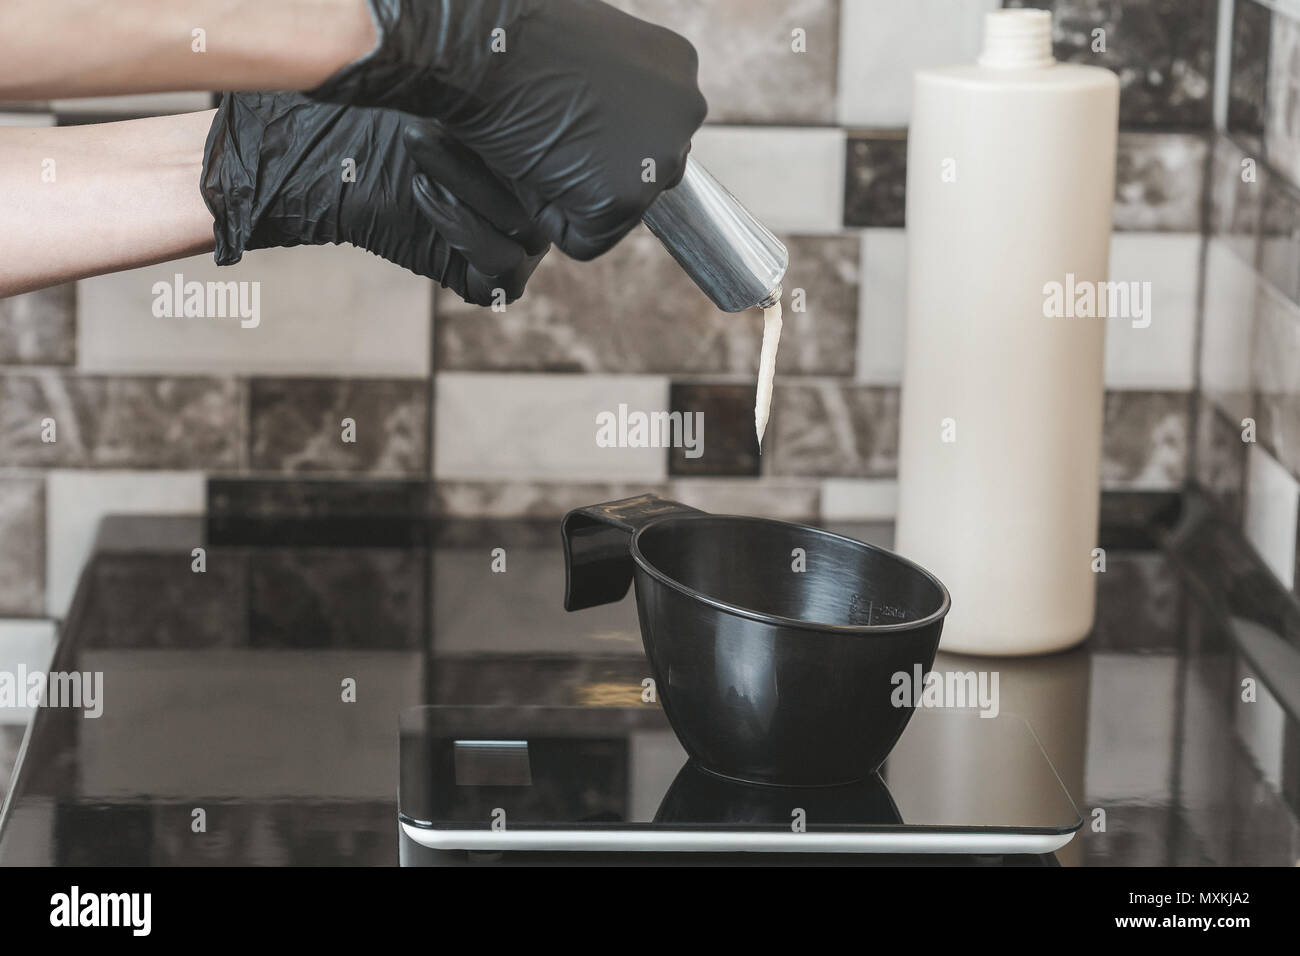 Stylist squeezing a hair dye in a bowl, Hair dyeing at home or in hairdresser salon concept - Stock Image